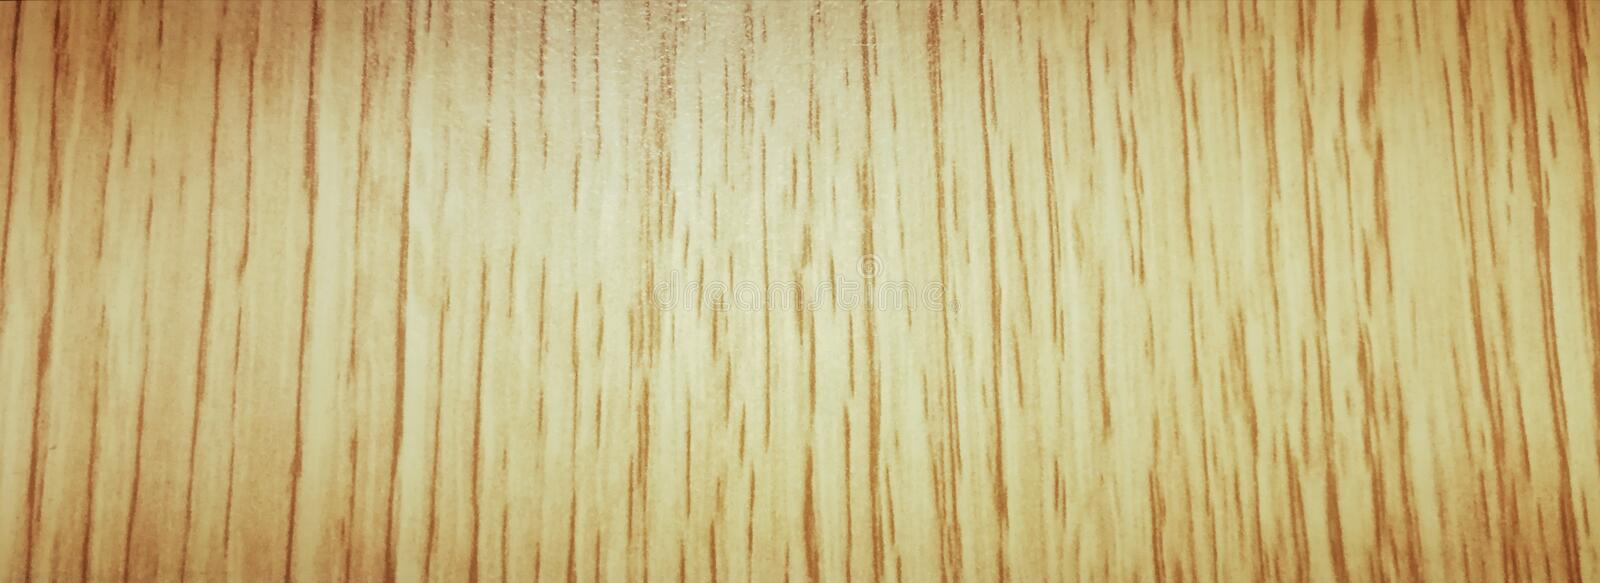 Light brown wood texture for background design royalty free stock photo